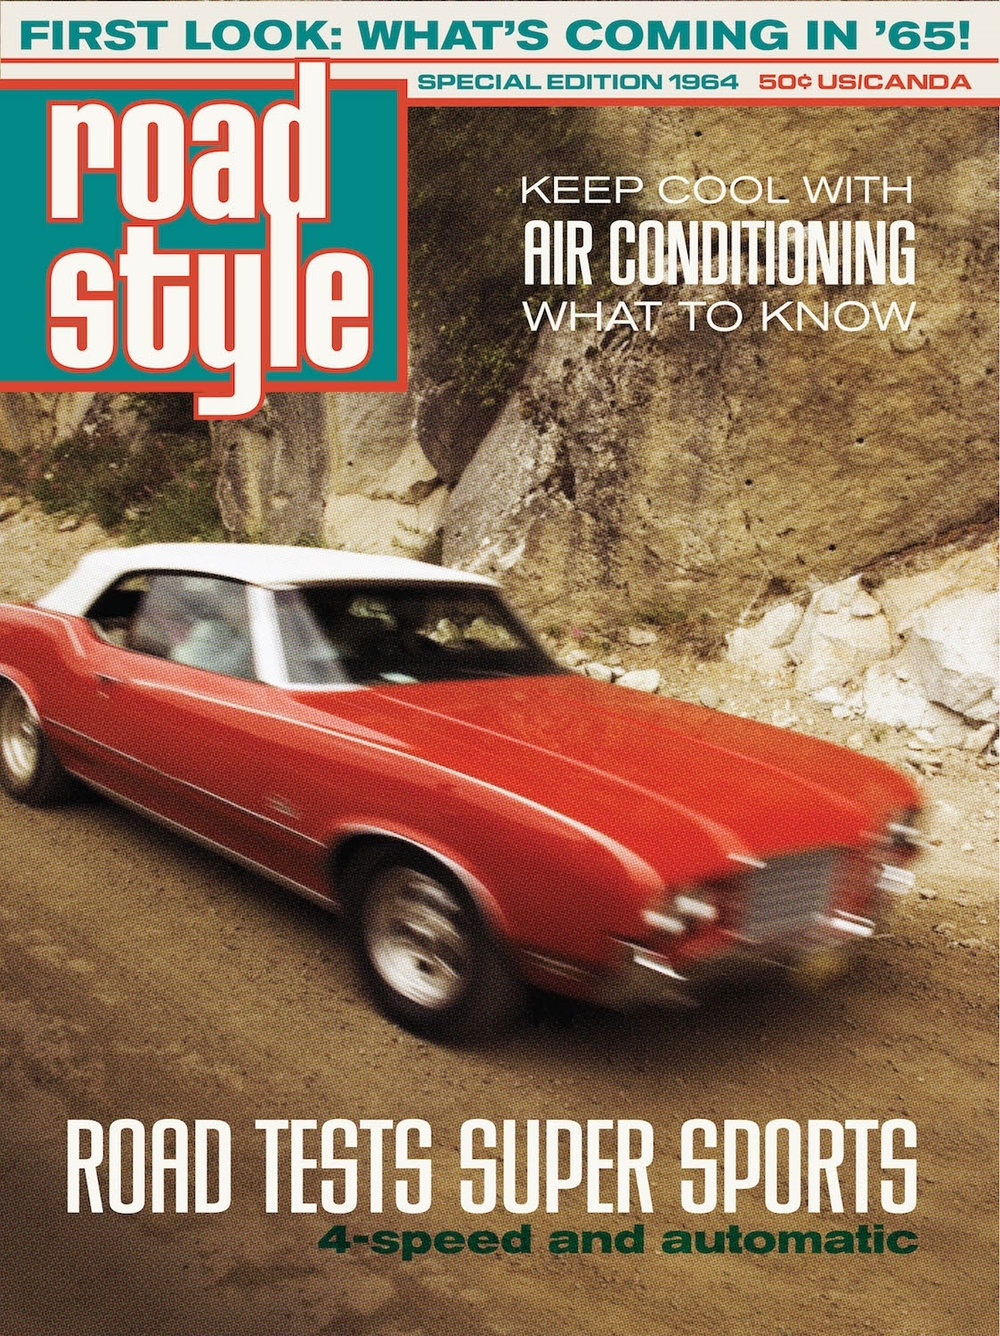 ROADstyle magazine cover FRONTfinal.jpg